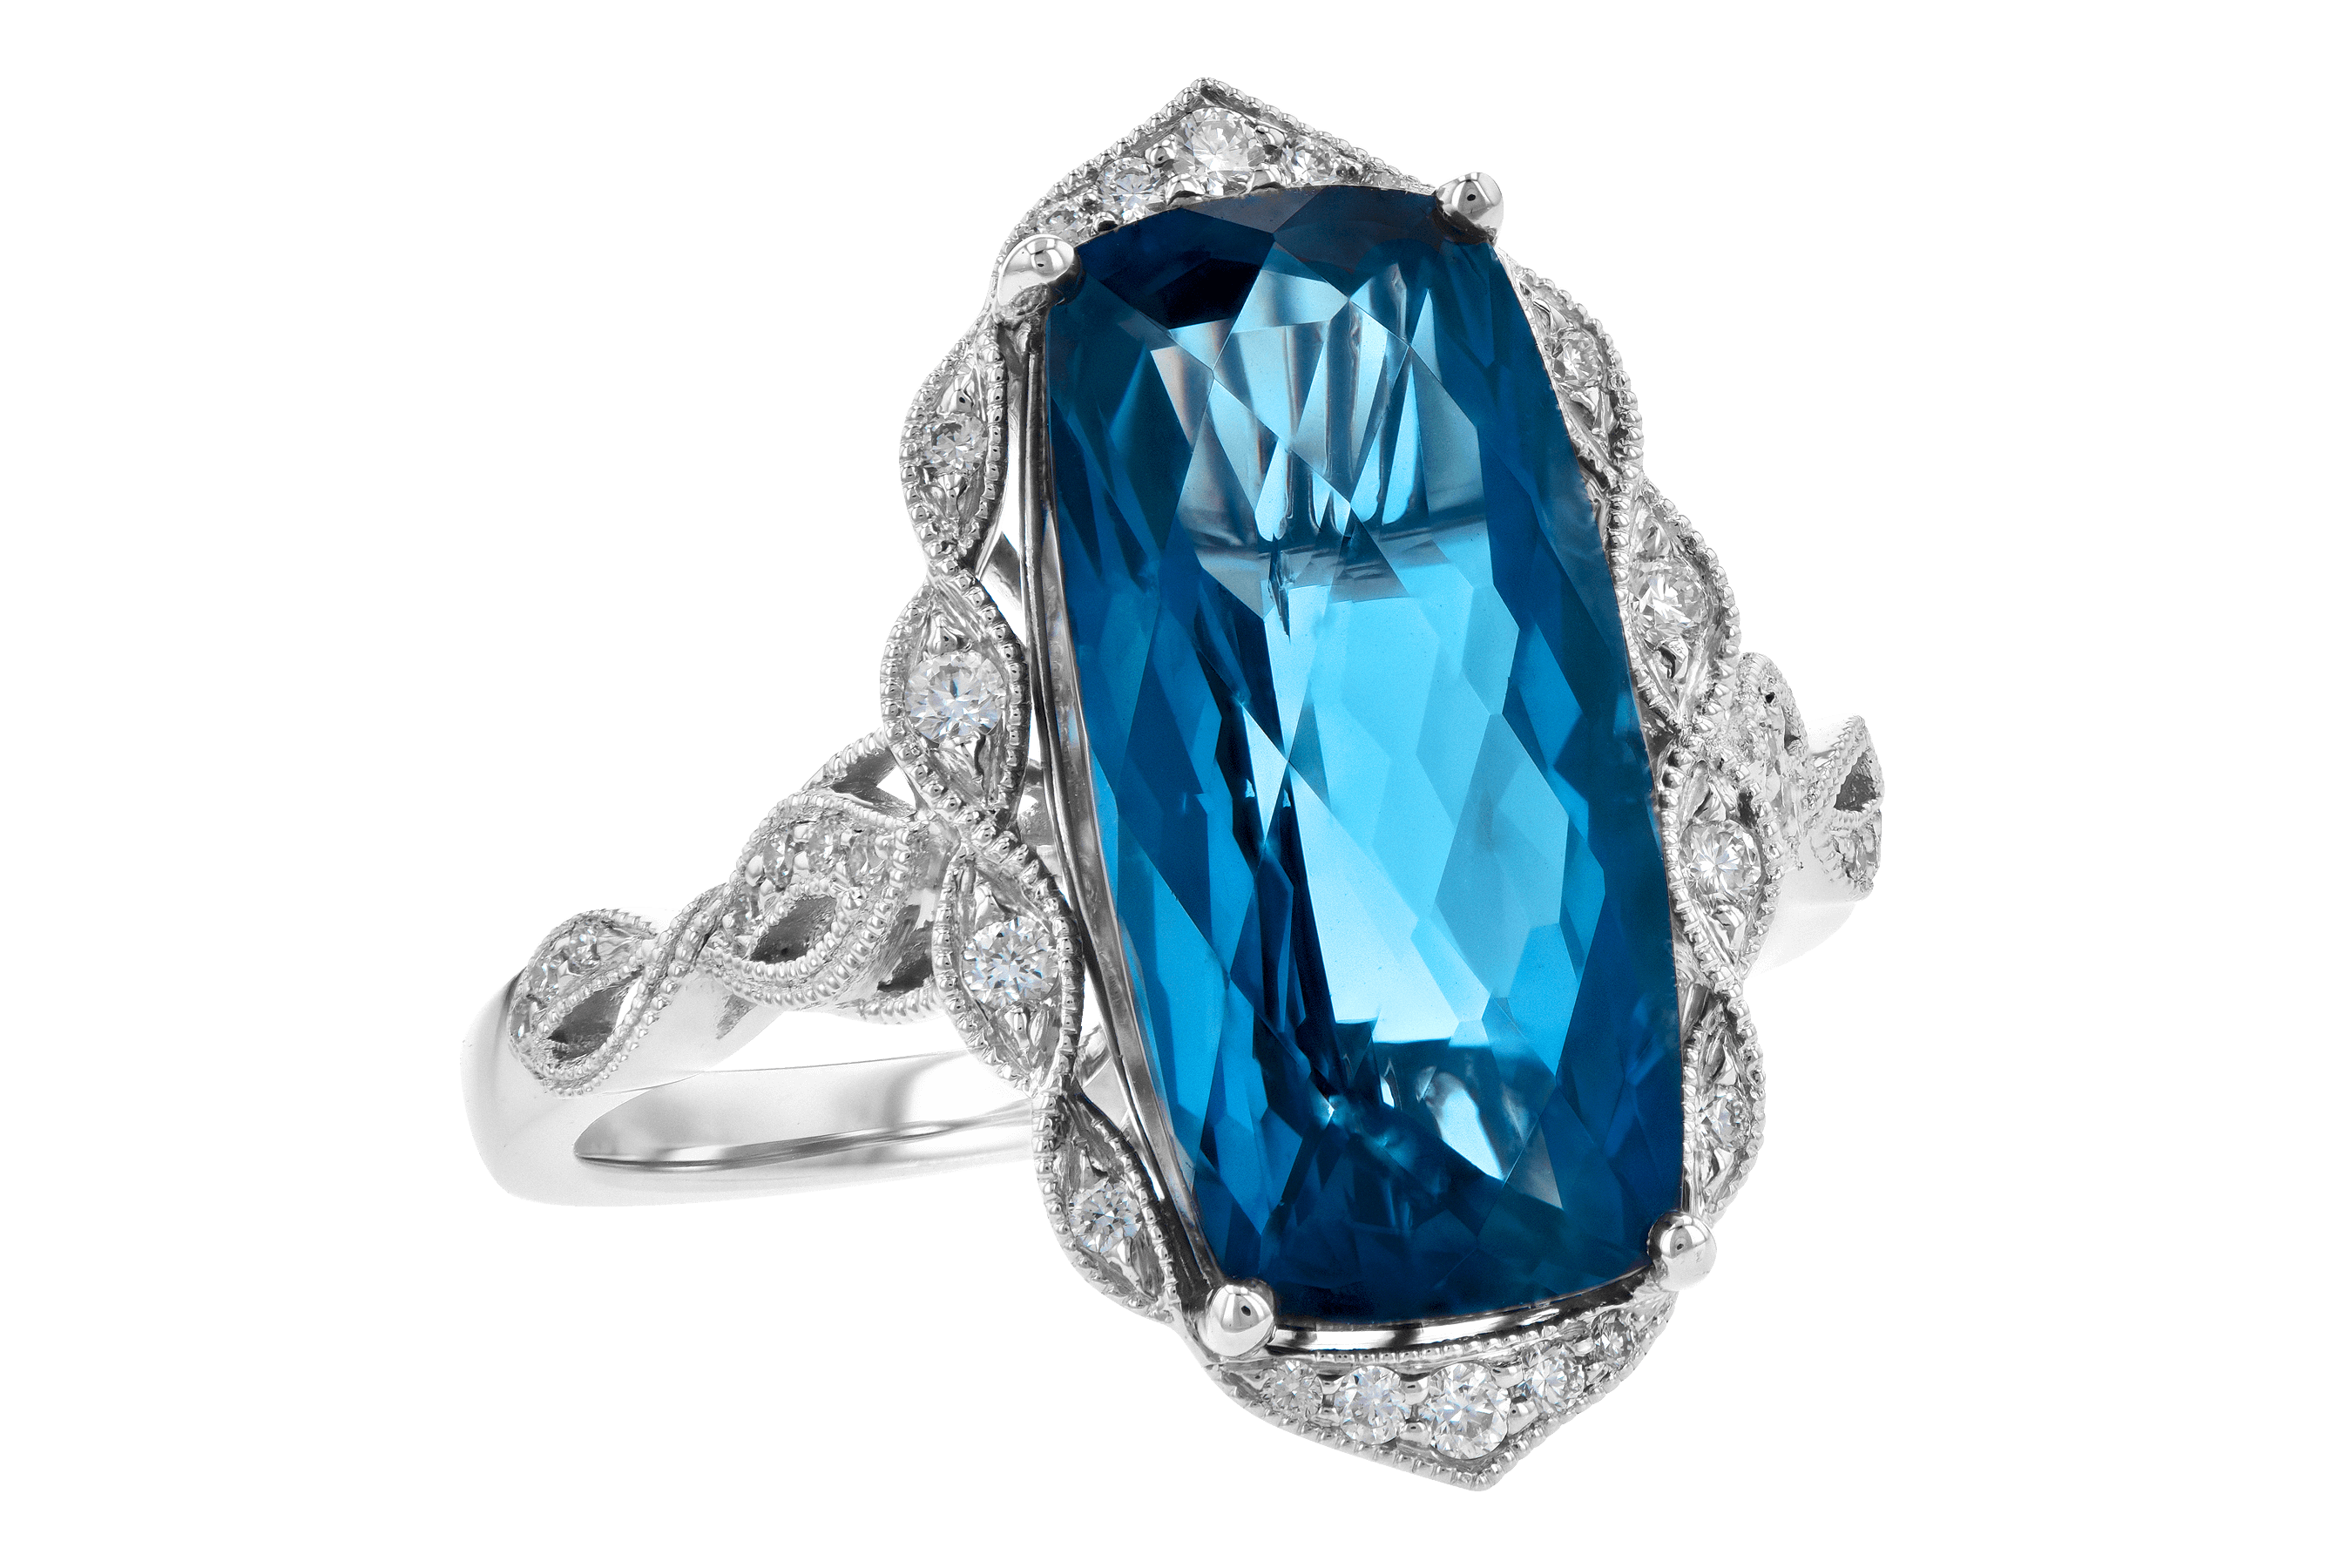 H190-10640: LDS RG 6.75 LONDON BLUE TOPAZ 6.90 TGW